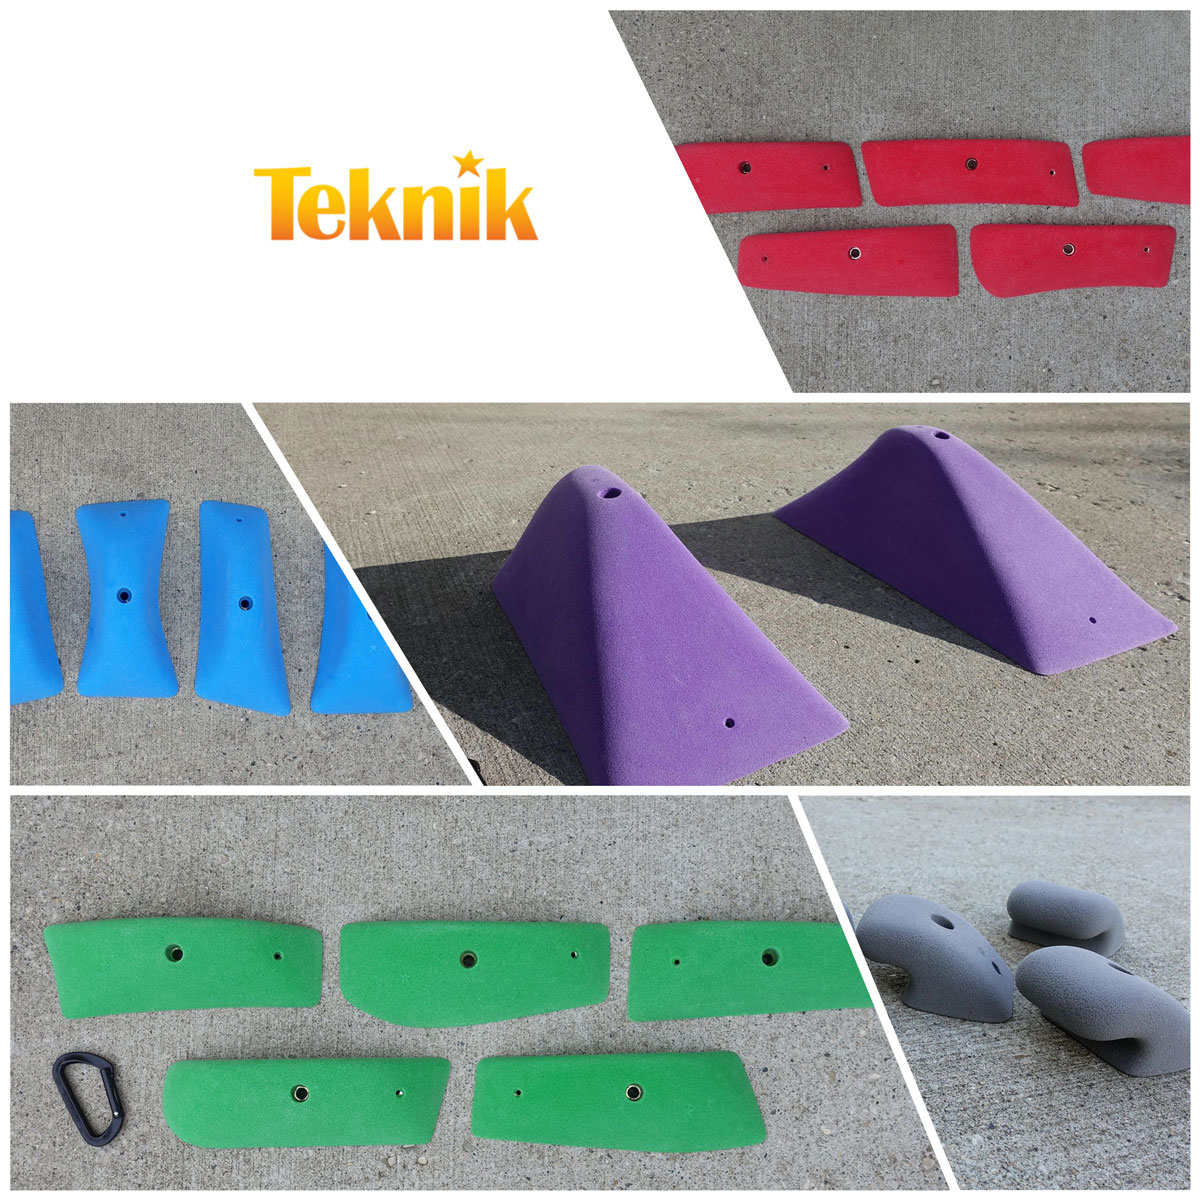 Teknik's Scarabs, Fangs, Pinches and downclimb jugs